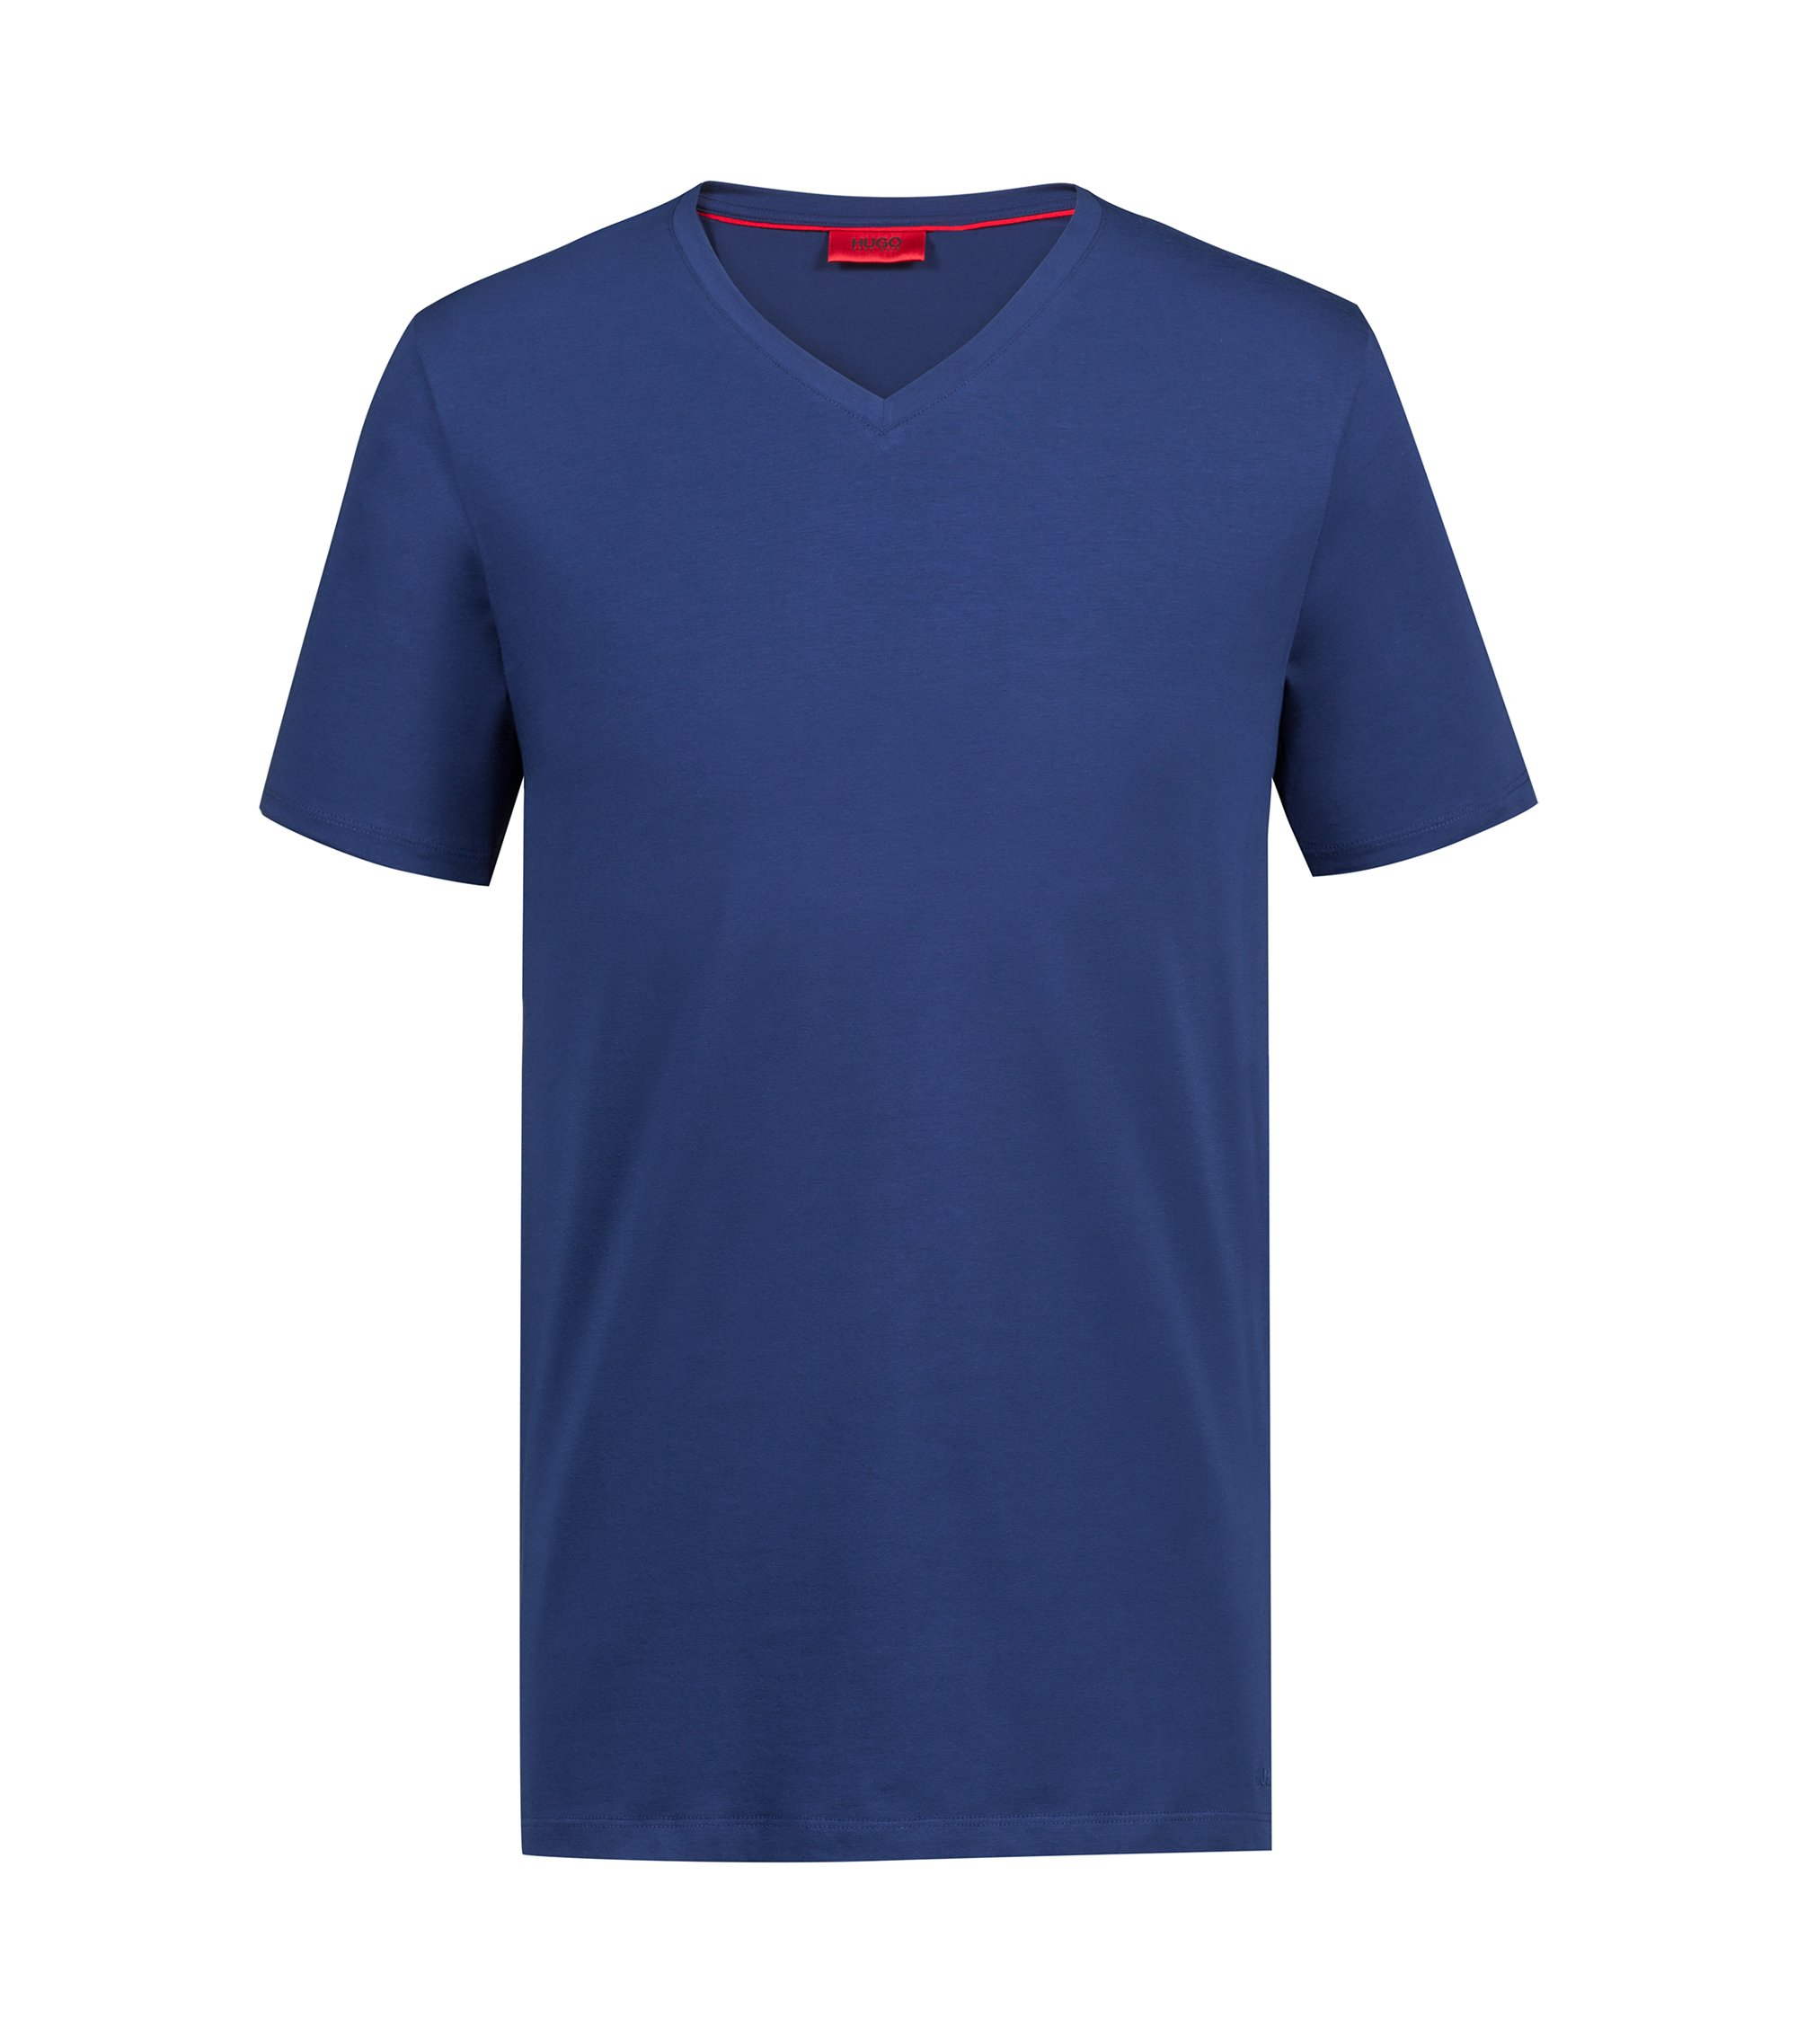 V-neck T-shirt in stretch cotton jersey, Dark Blue